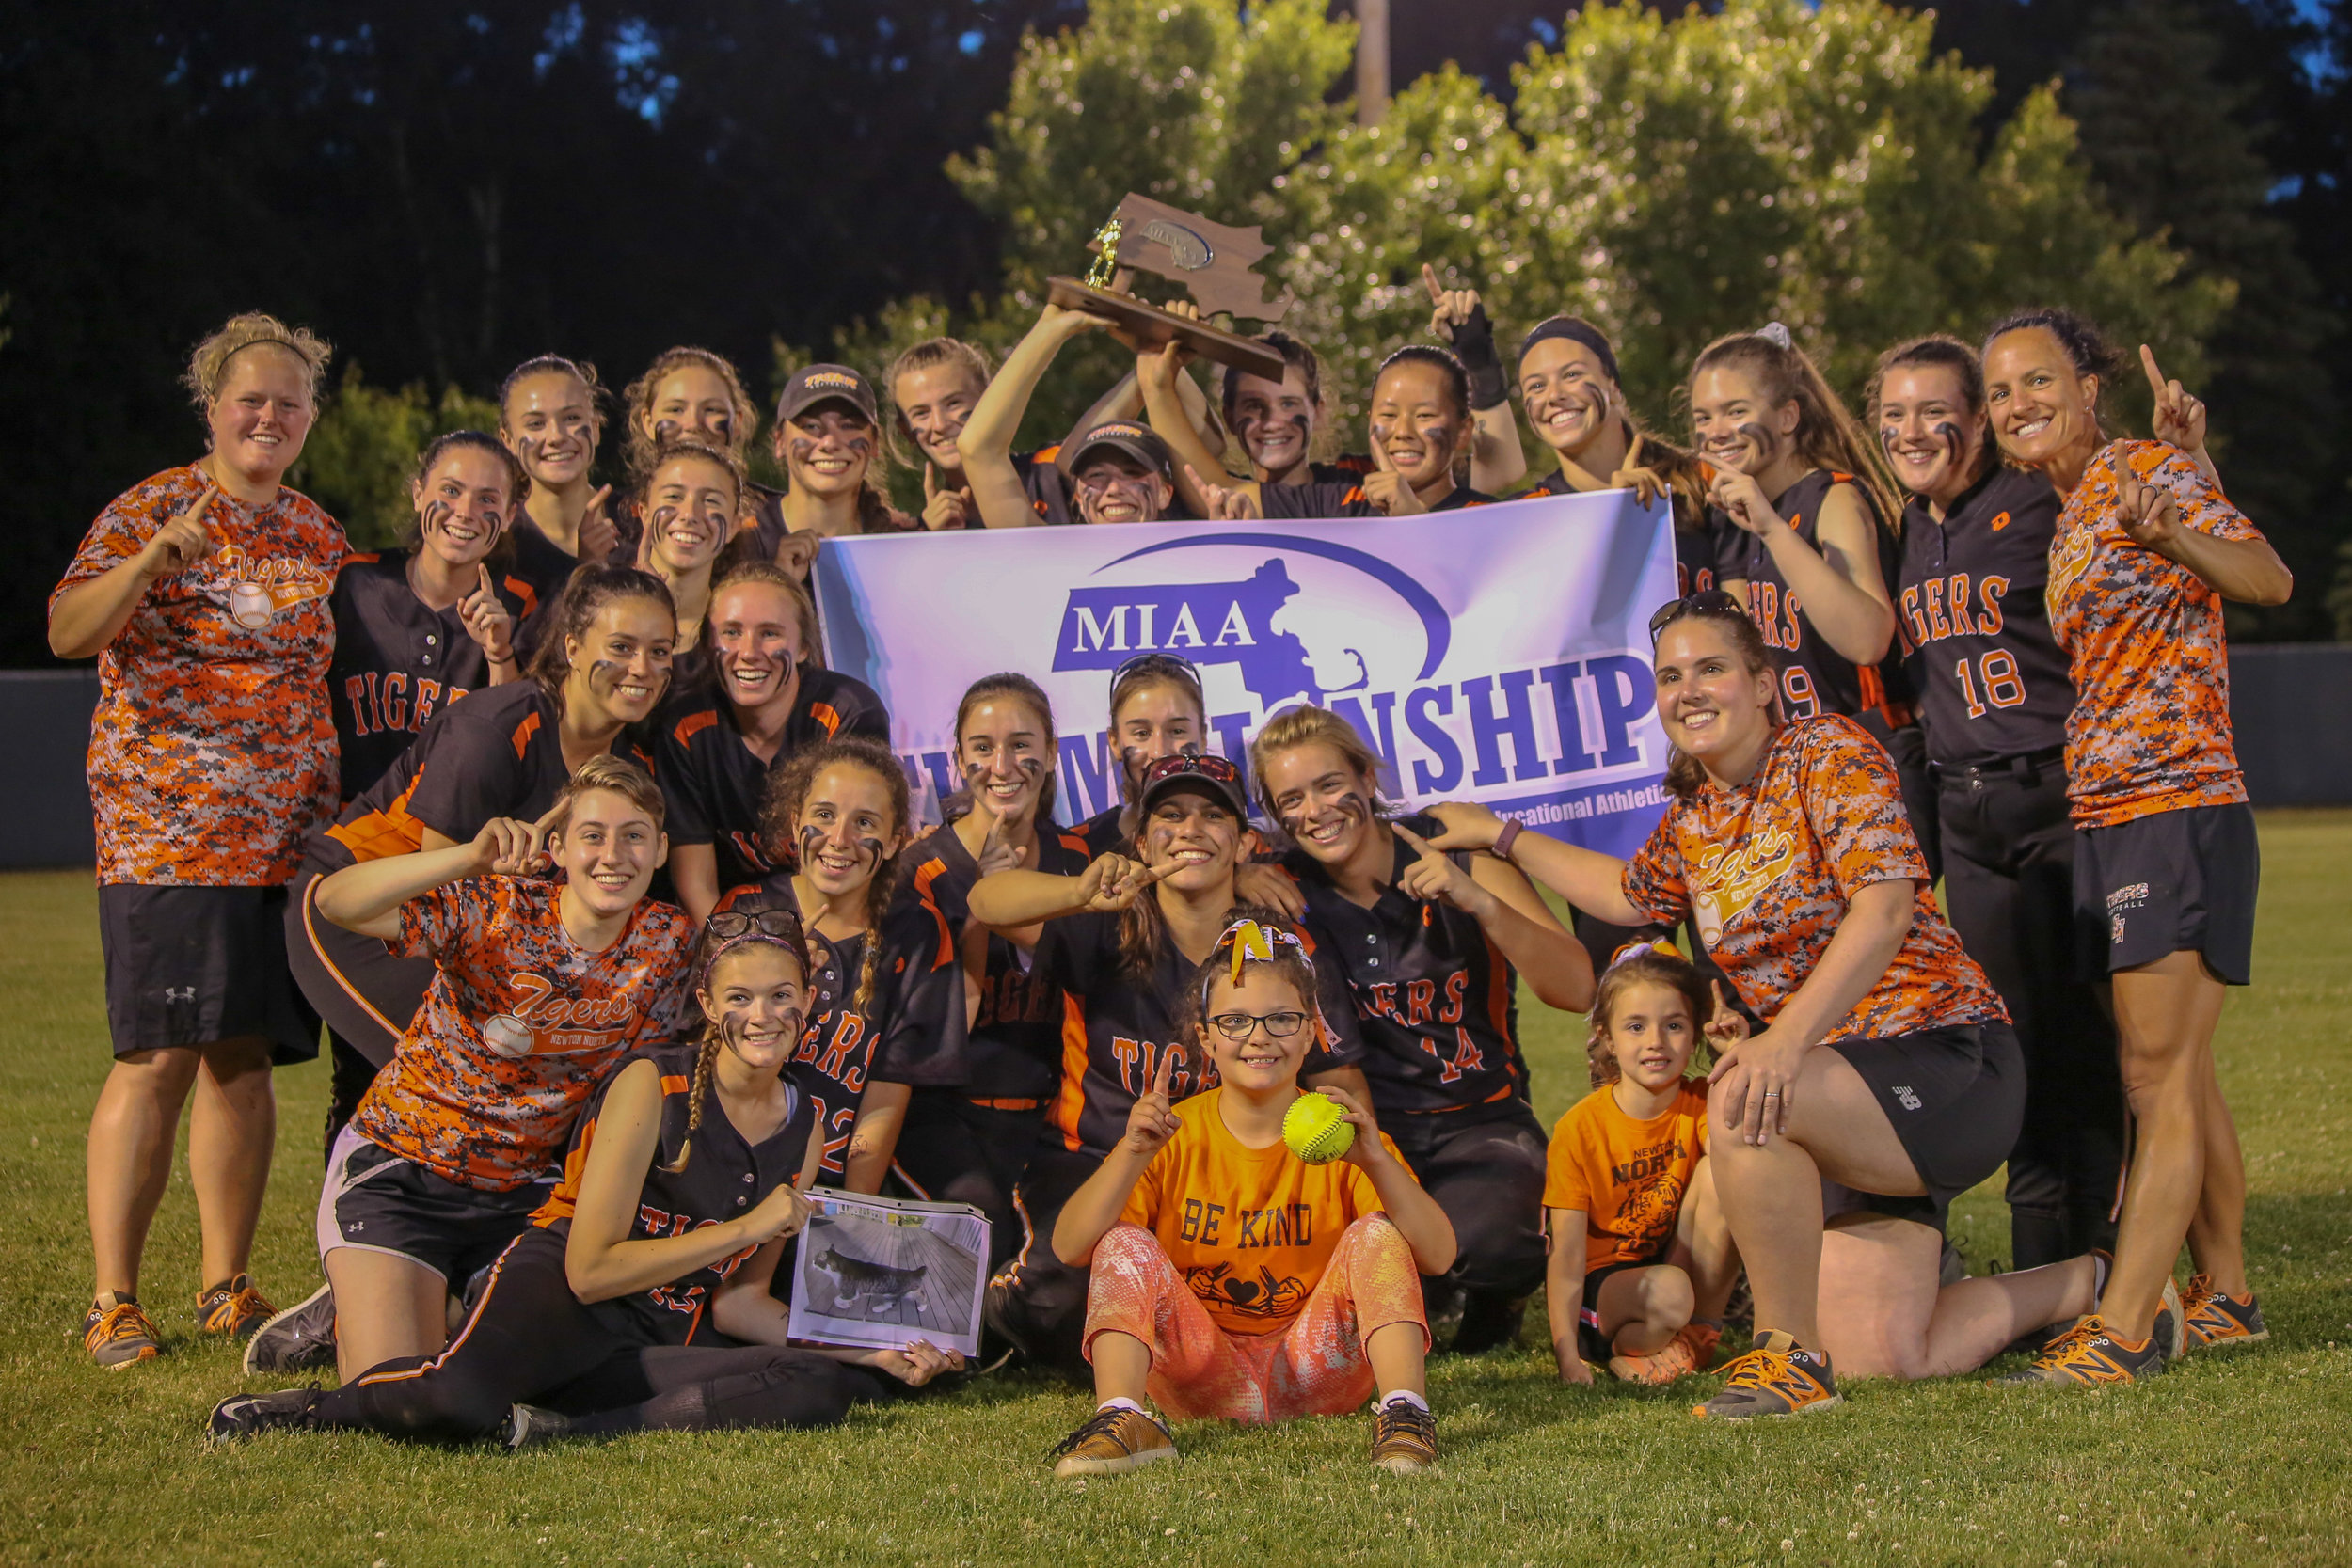 Newton North high school's 2018 varsity girls softball team won the Division 1 North title in the MIAA tournament, beating Metheun six to three and going back-to-back with their championships.